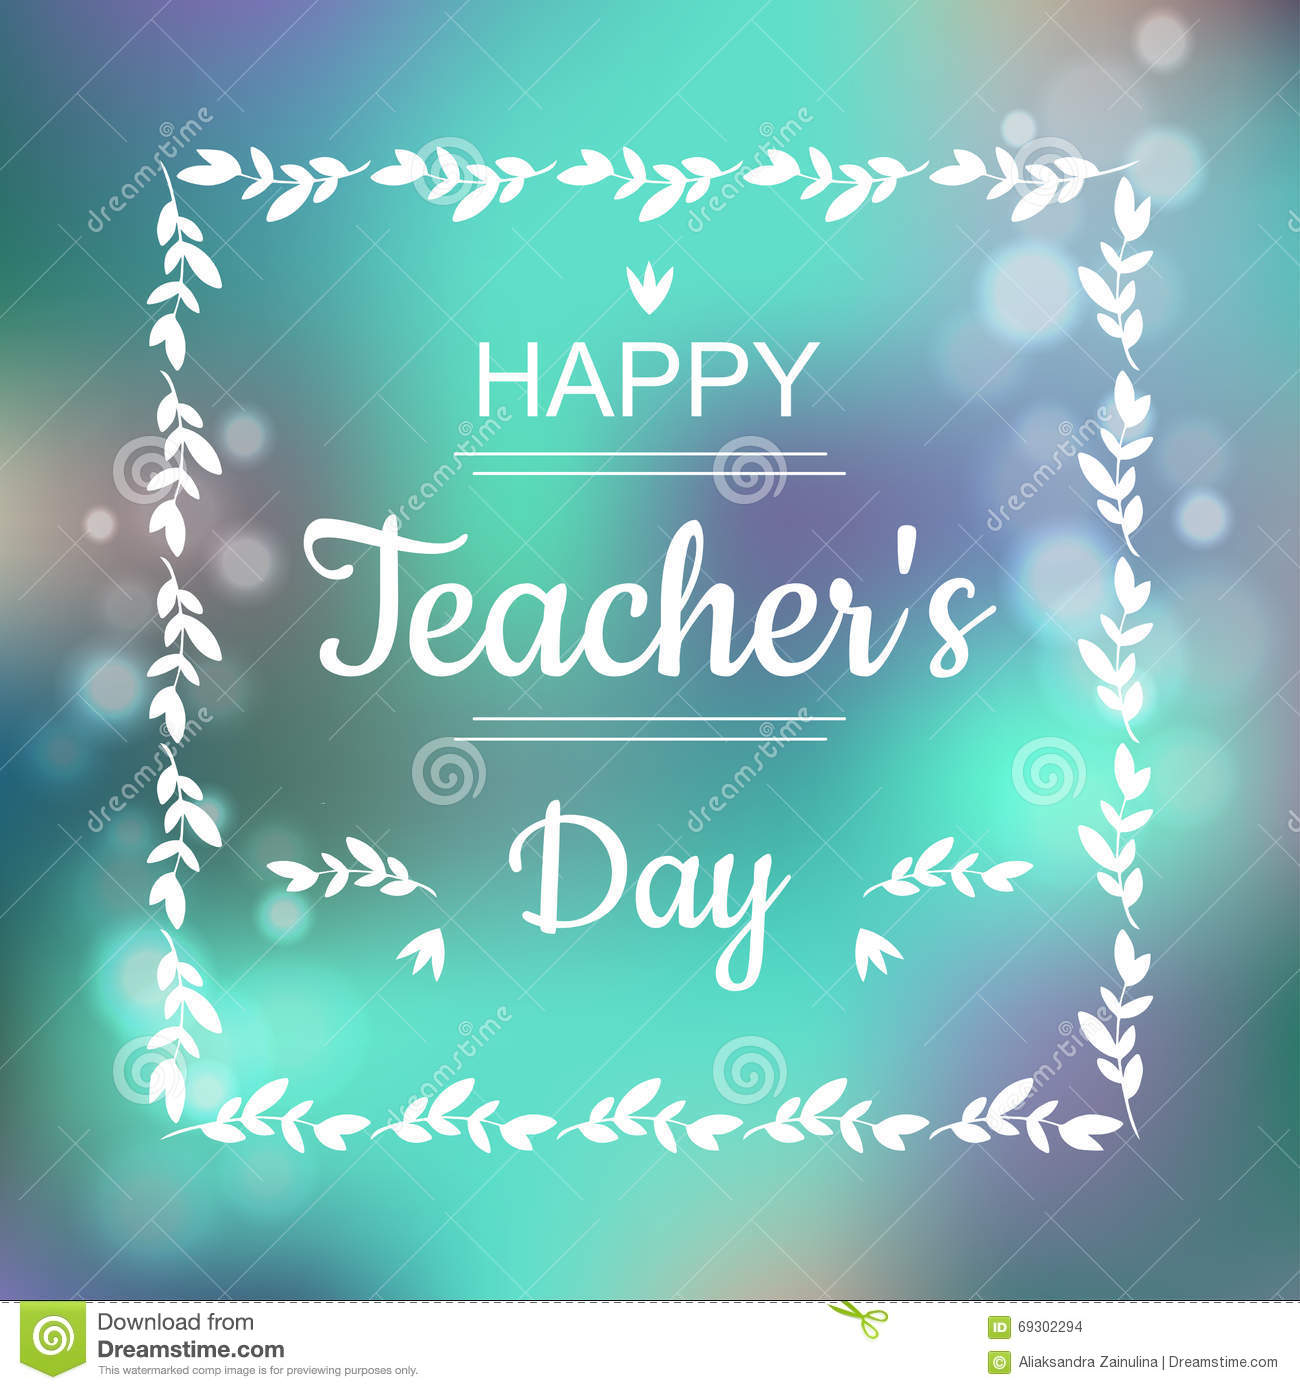 Greeting card happy teachers day stock vector illustration of greeting card for happy teachers day abstract background and text in square frame in vector kristyandbryce Image collections